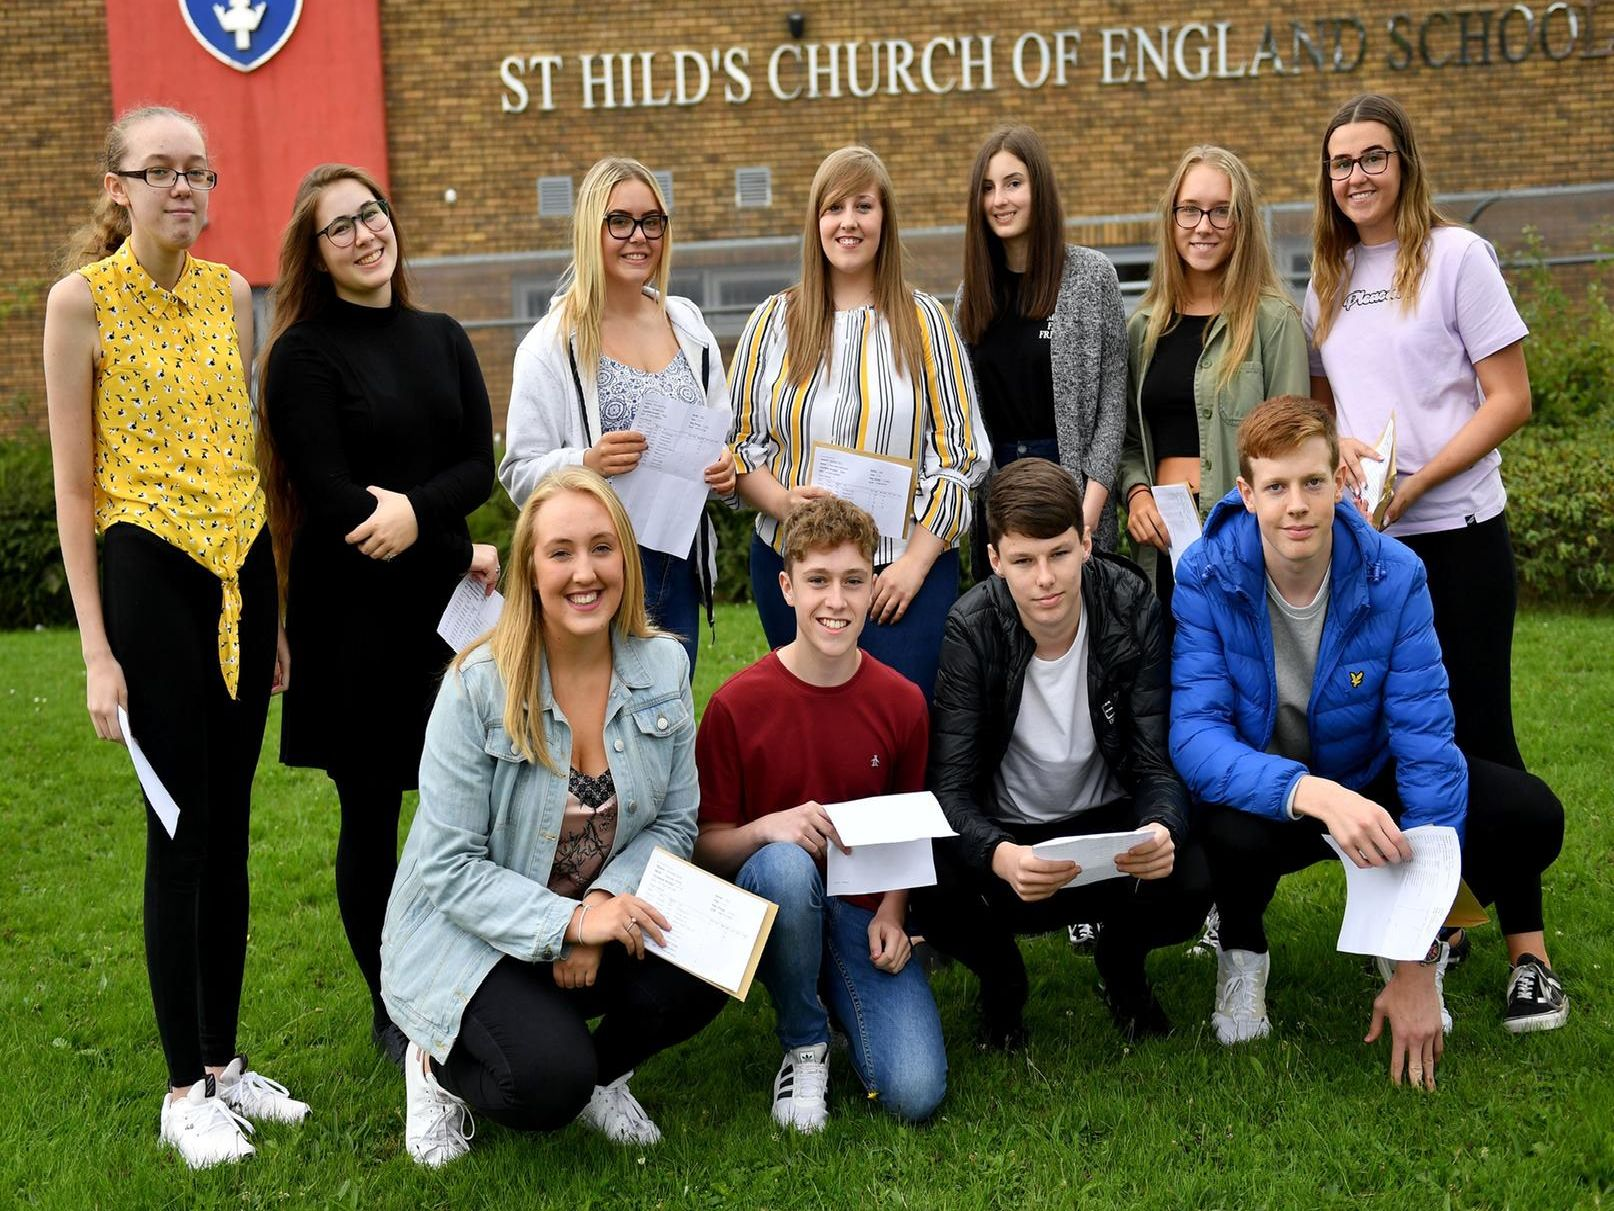 Pupils at St Hild's Church of England School celebrate their GCSE results last August.